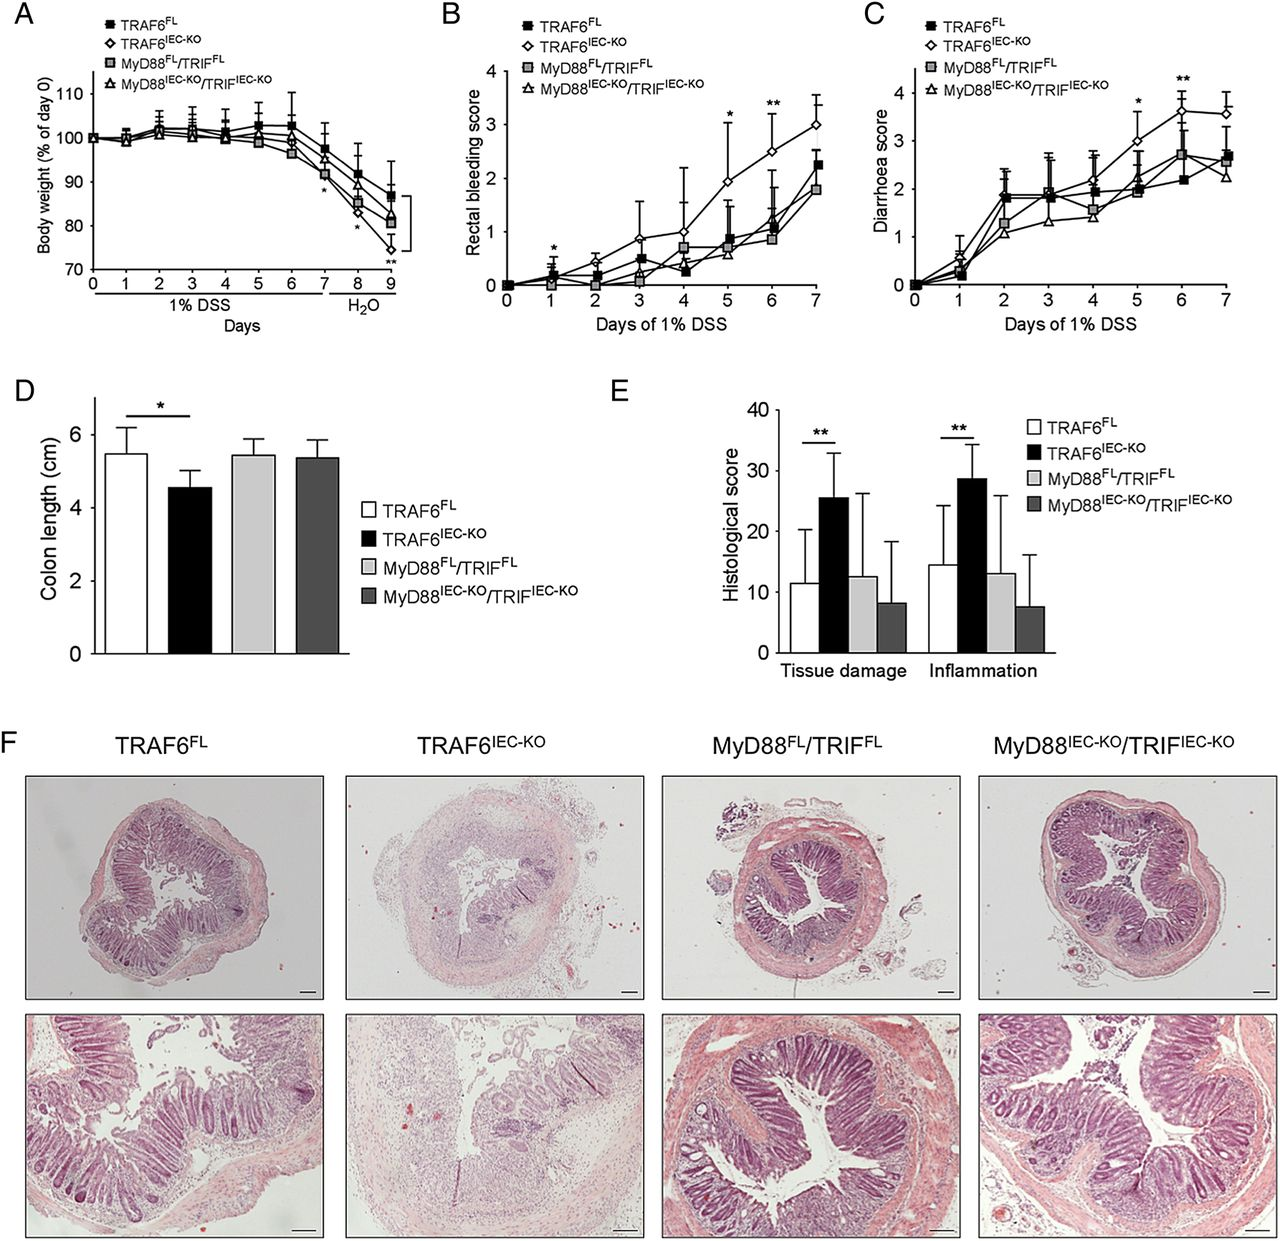 TLR-independent anti-inflammatory function of intestinal